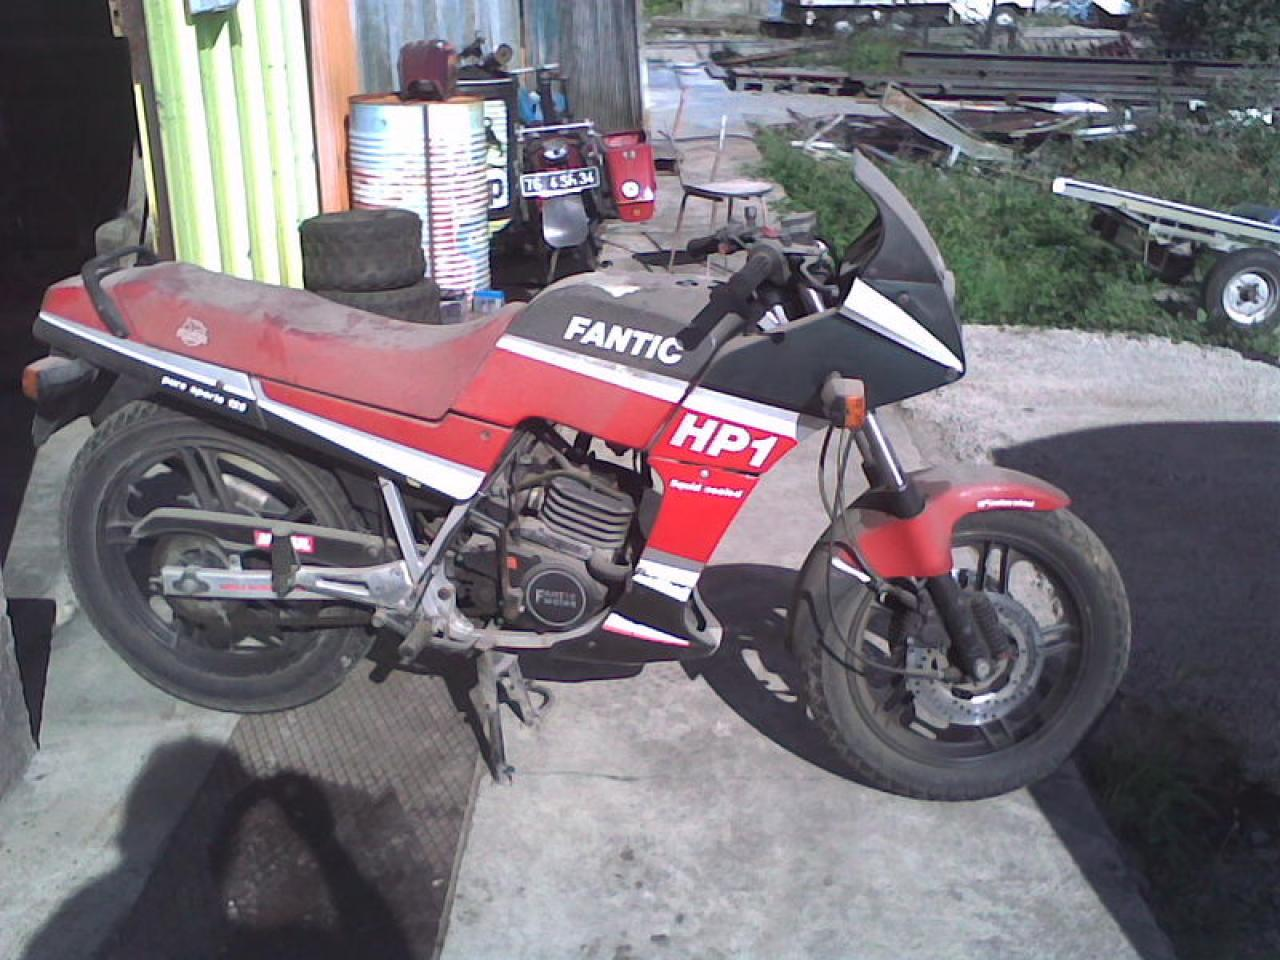 Fantic 125 Sport HP 1 (reduced effect) images #70733